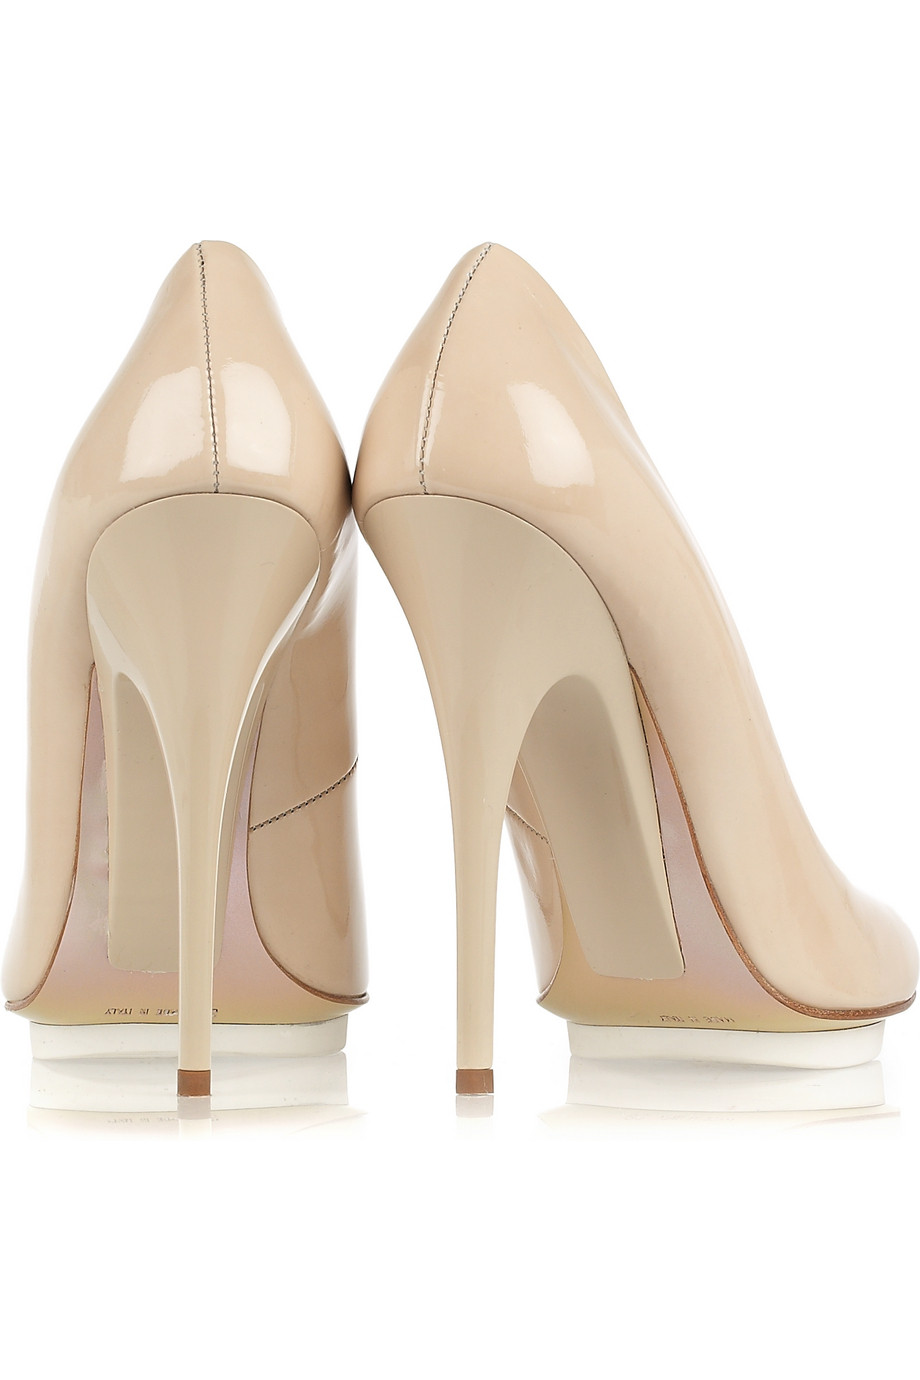 Giuseppe Zanotti Patent-leather Pumps in Nude (Natural) - Lyst